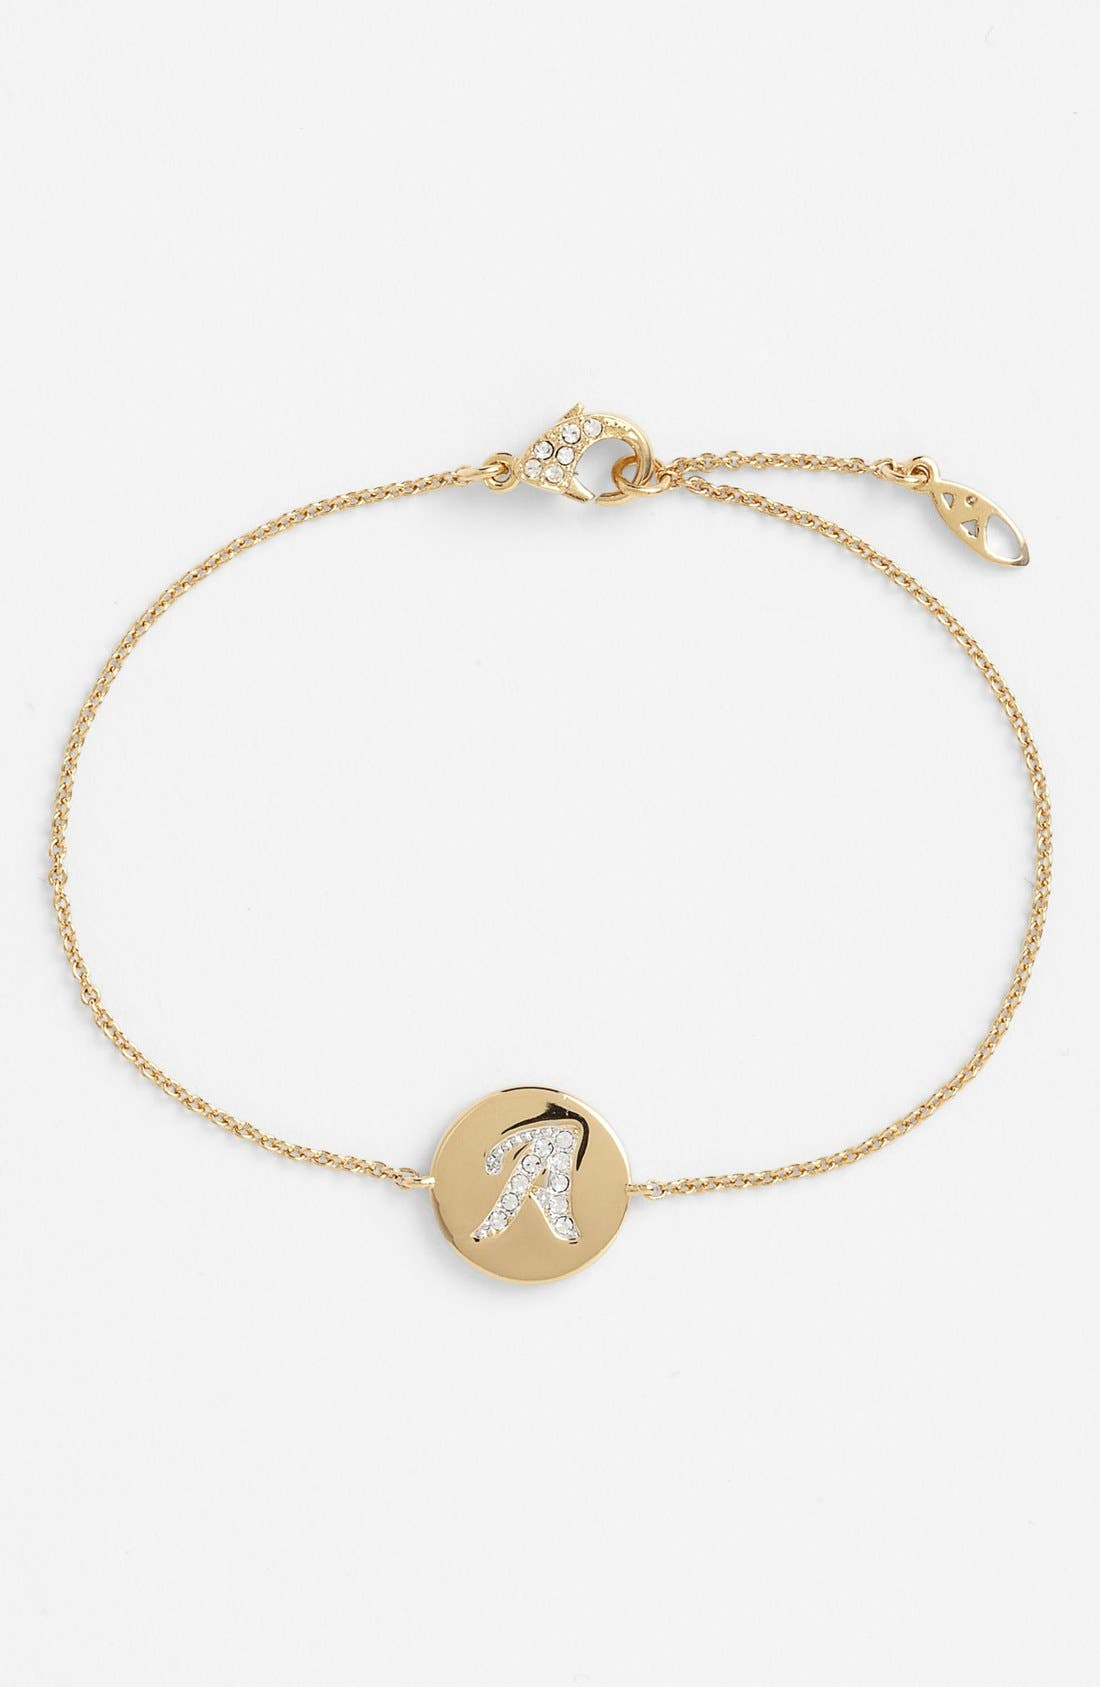 Main Image - Nadri Boxed Initial Station Bracelet (Nordstrom Exclusive)